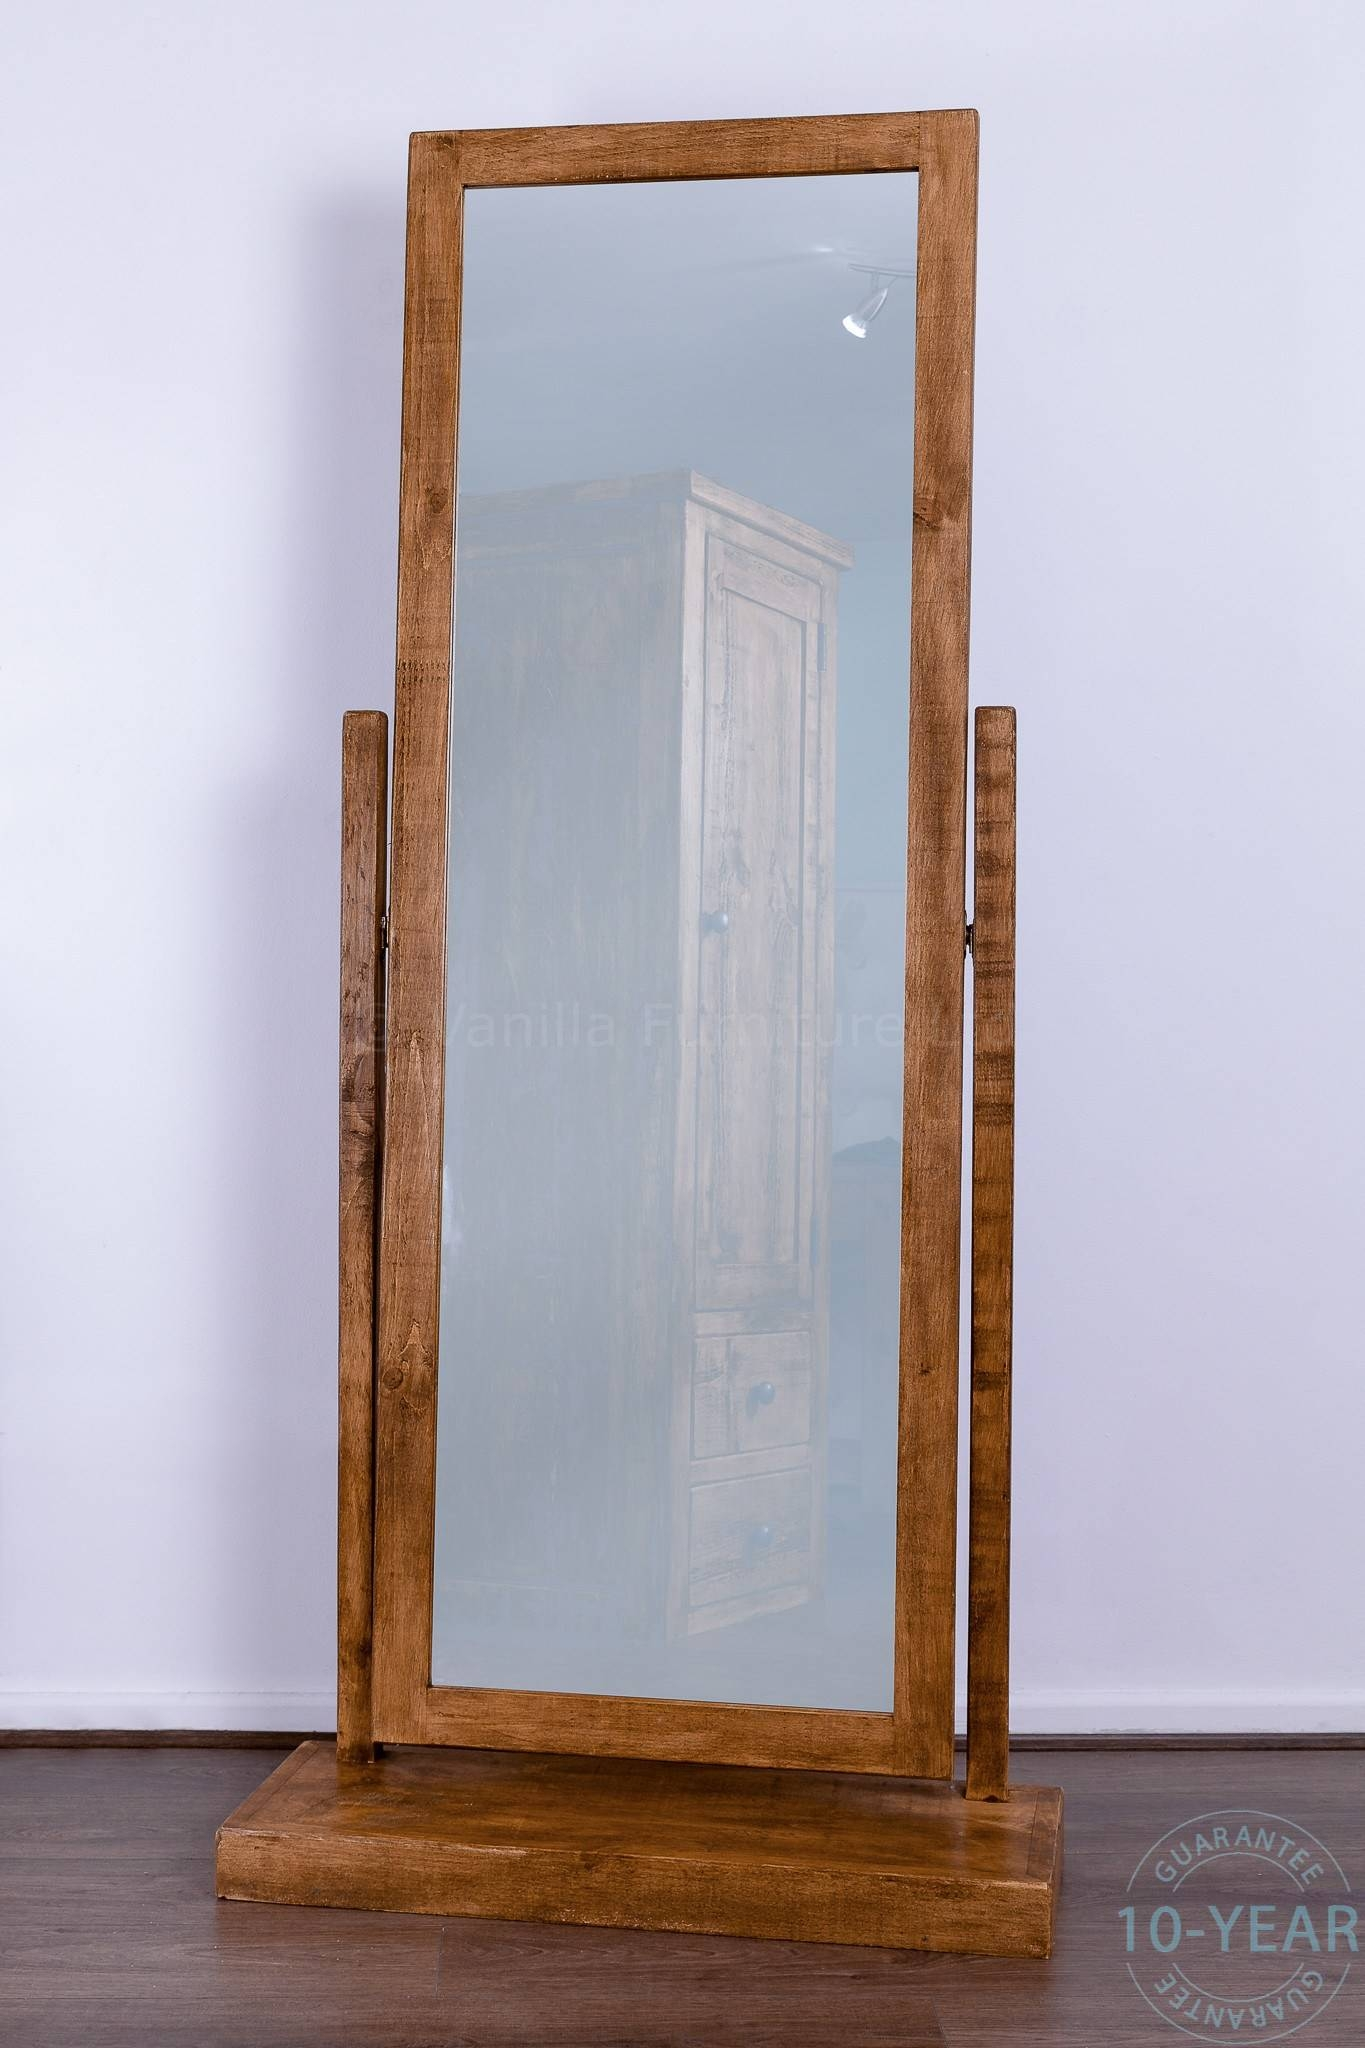 Bedroom Furniture Sets : Mirror Framed Mirror Floor Standing regarding Small Free Standing Mirrors (Image 8 of 25)